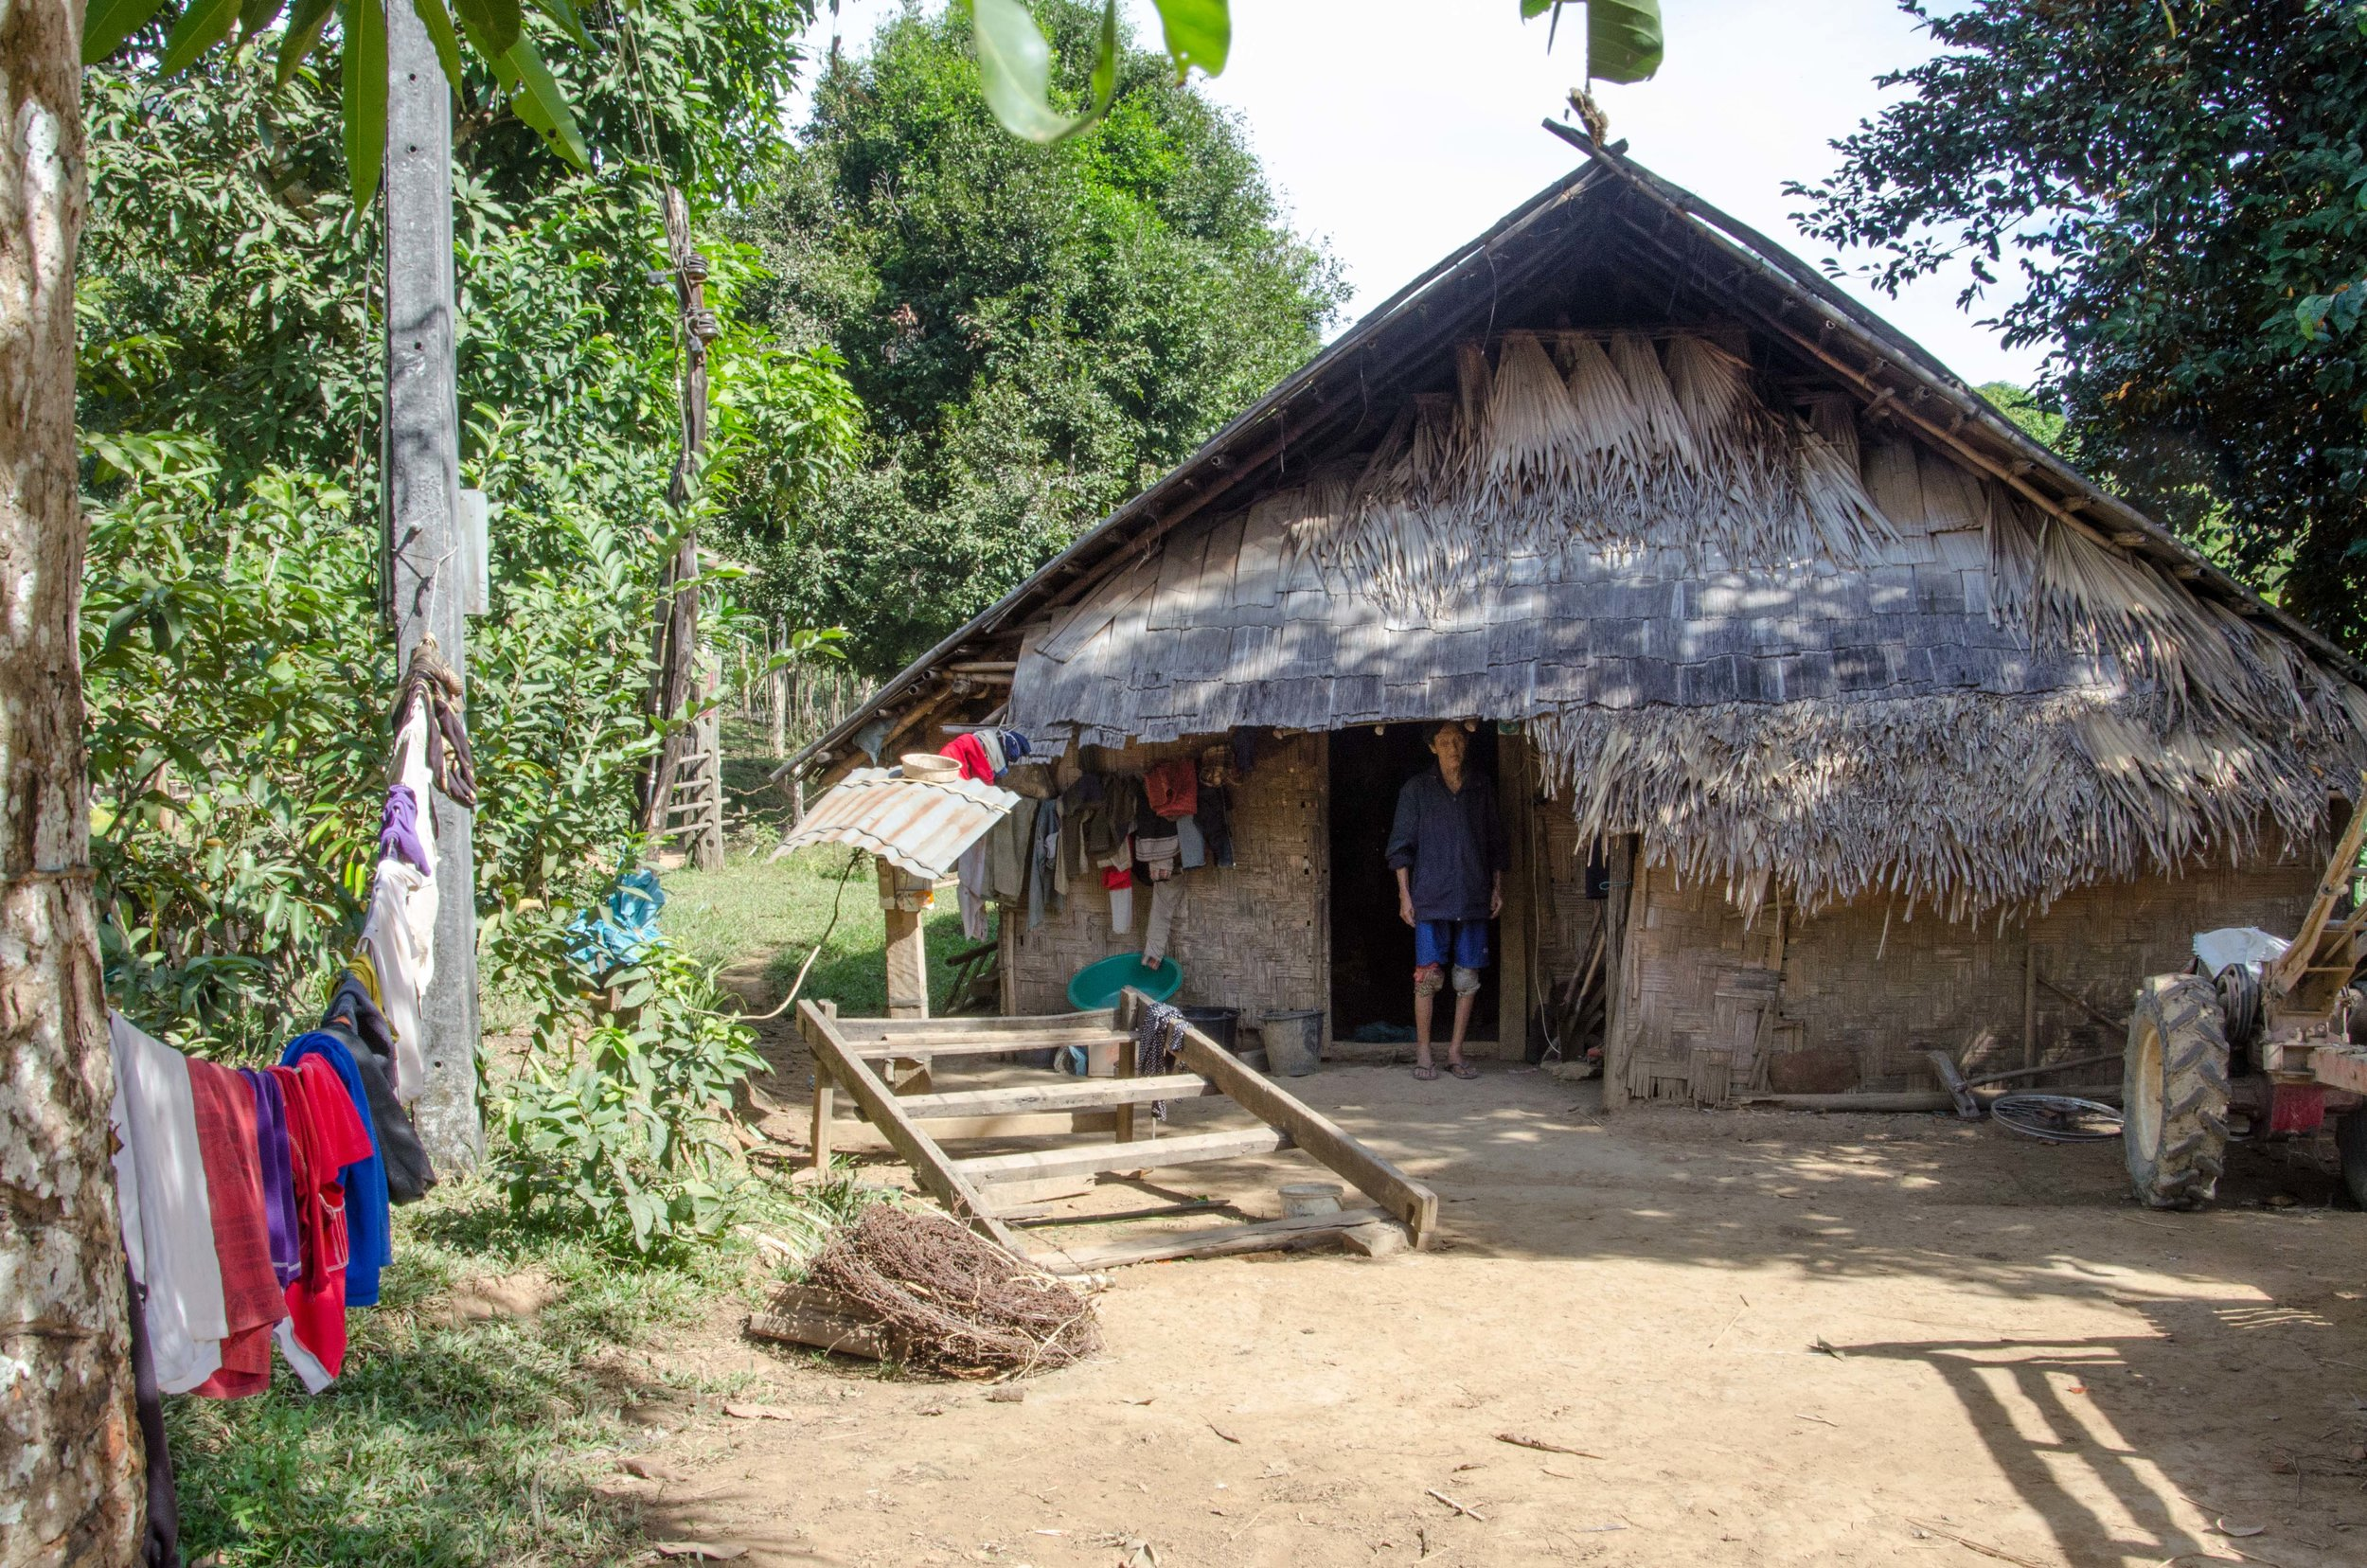 Hmong village house on route to Than Phu Kham, Vang Vieng, Laos, 29 Nov 2017.jpg